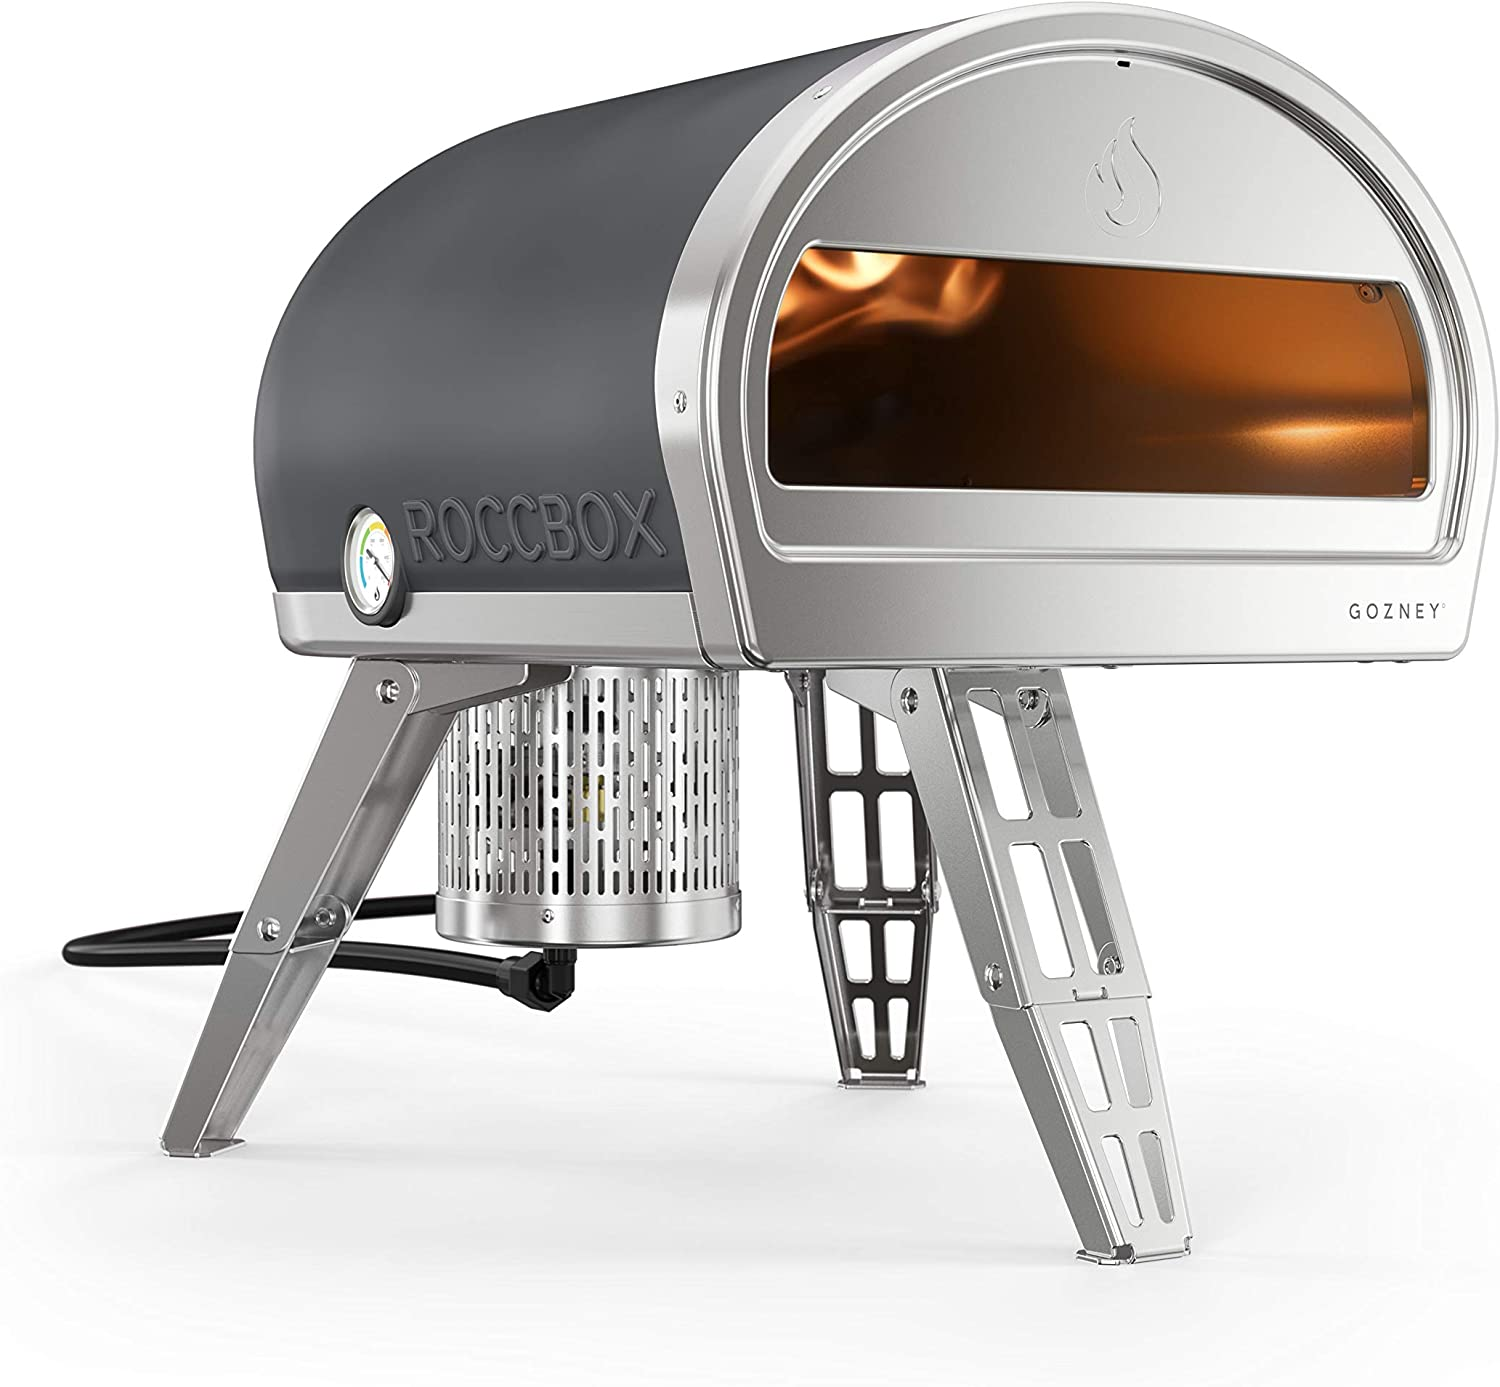 ROCCBOX by Gozney Portable Outdoor Pizza Oven - Gas Fired, Fire & Stone Outdoor Pizza Oven, Includes Professional Grade Pizza Peel